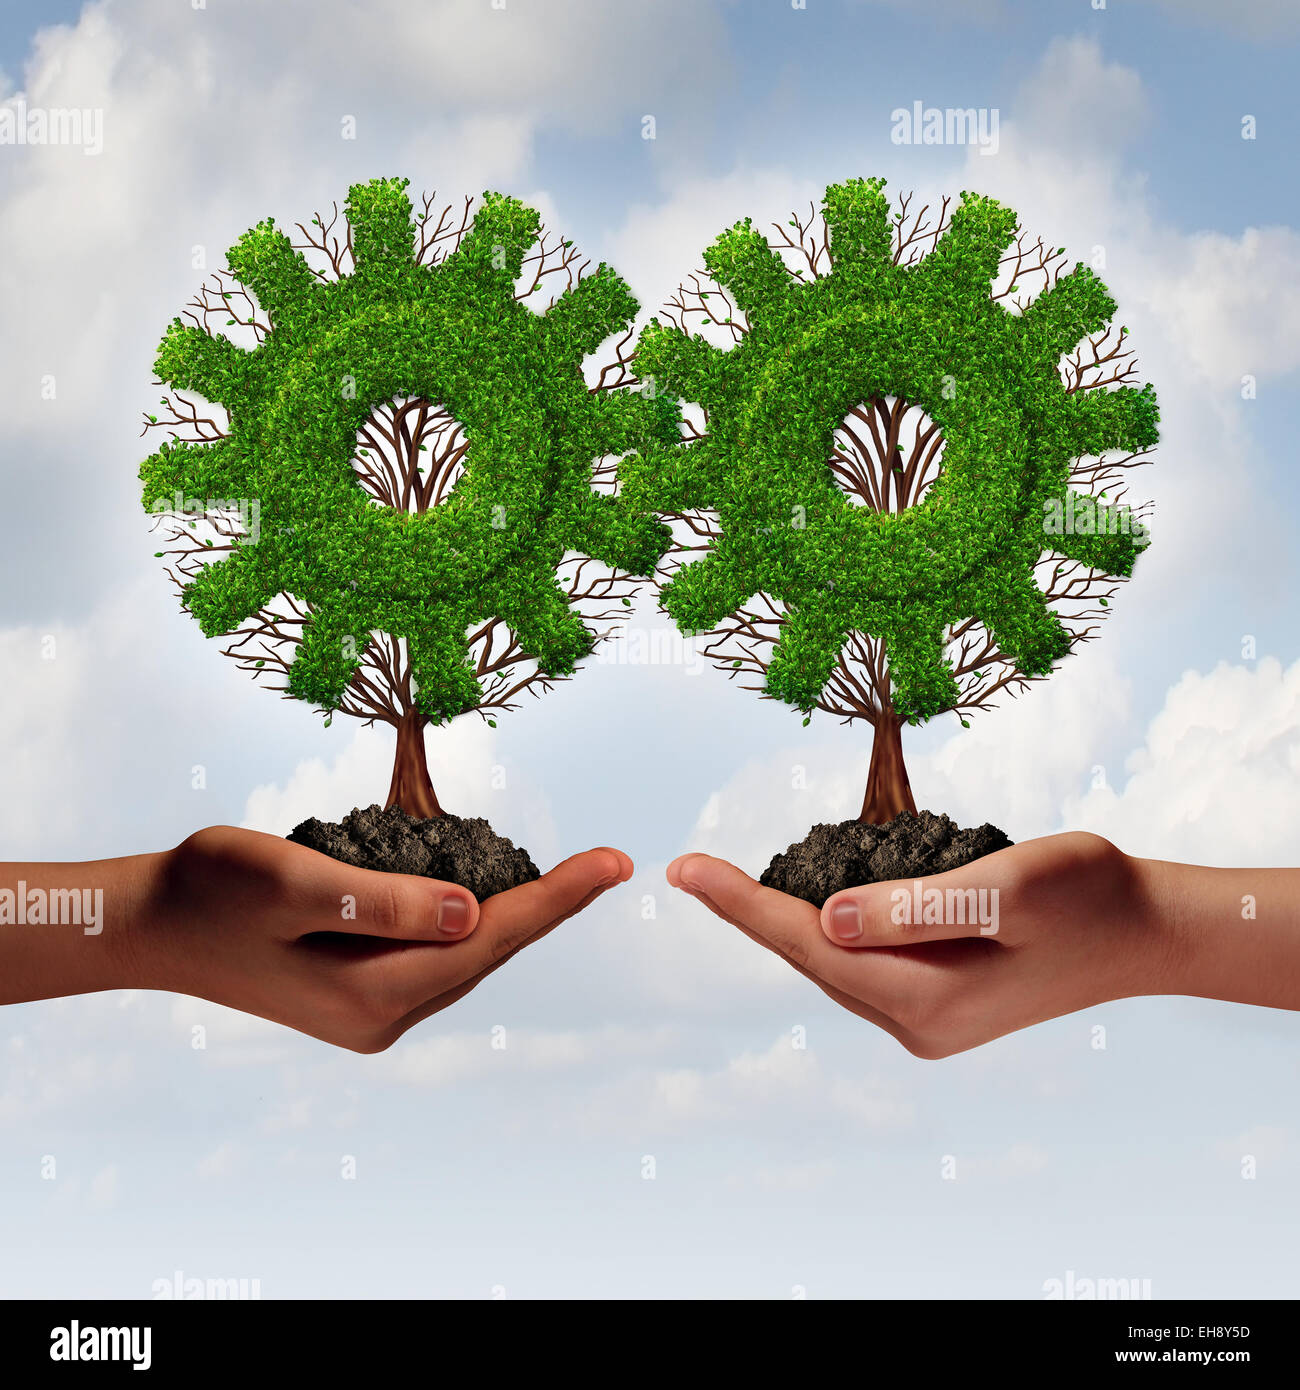 Team business strategy concept as two hands holding connected trees shaped as a gear or cog as a growing financial - Stock Image